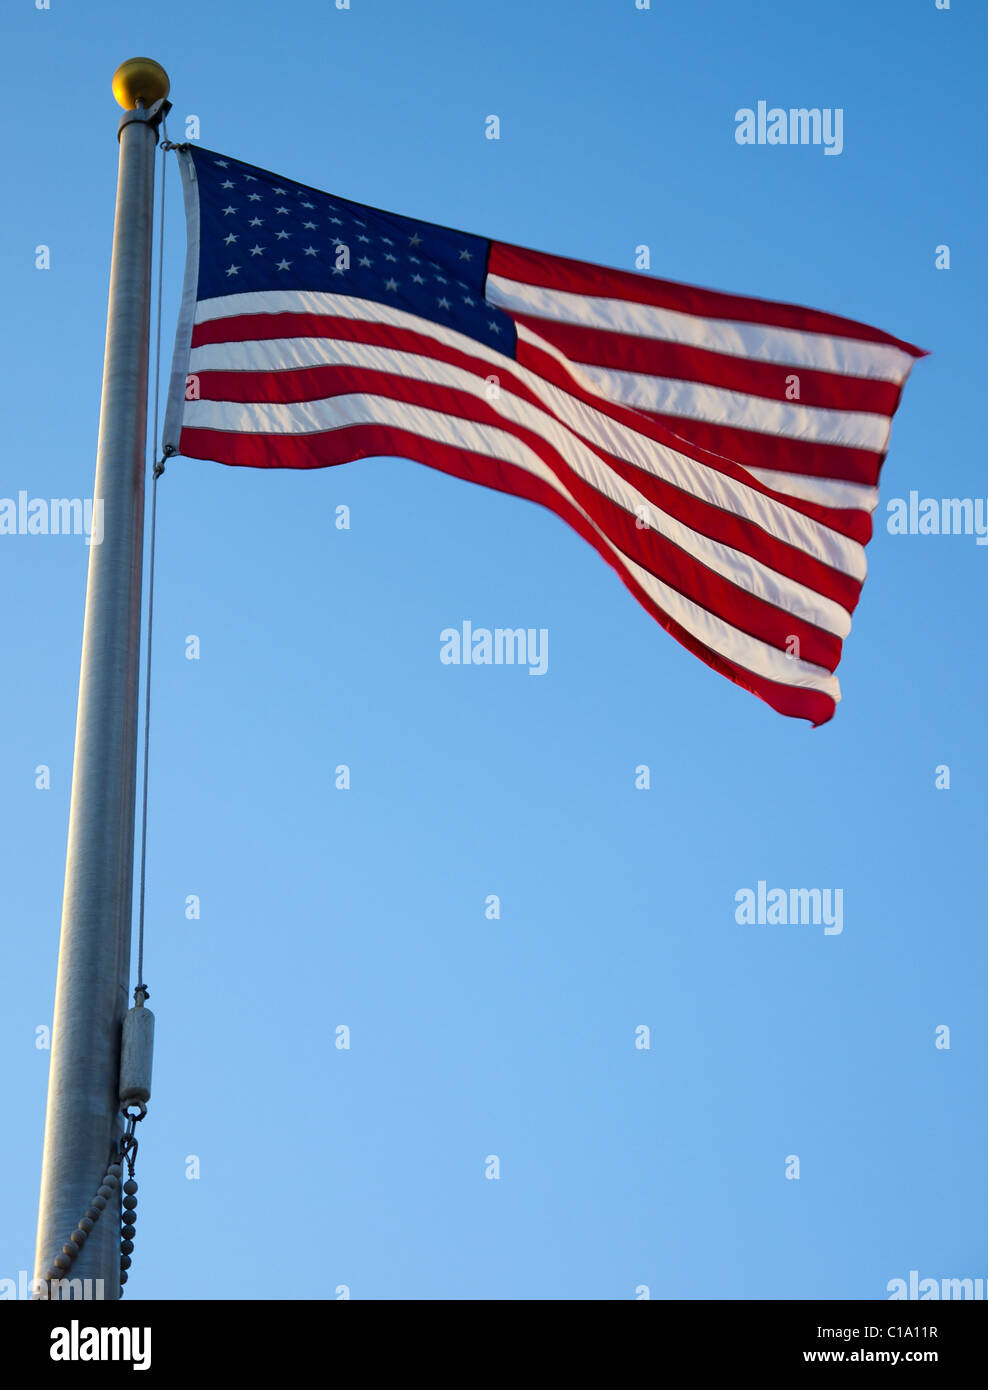 American flag waving in the wind viewed from below - Stock Image